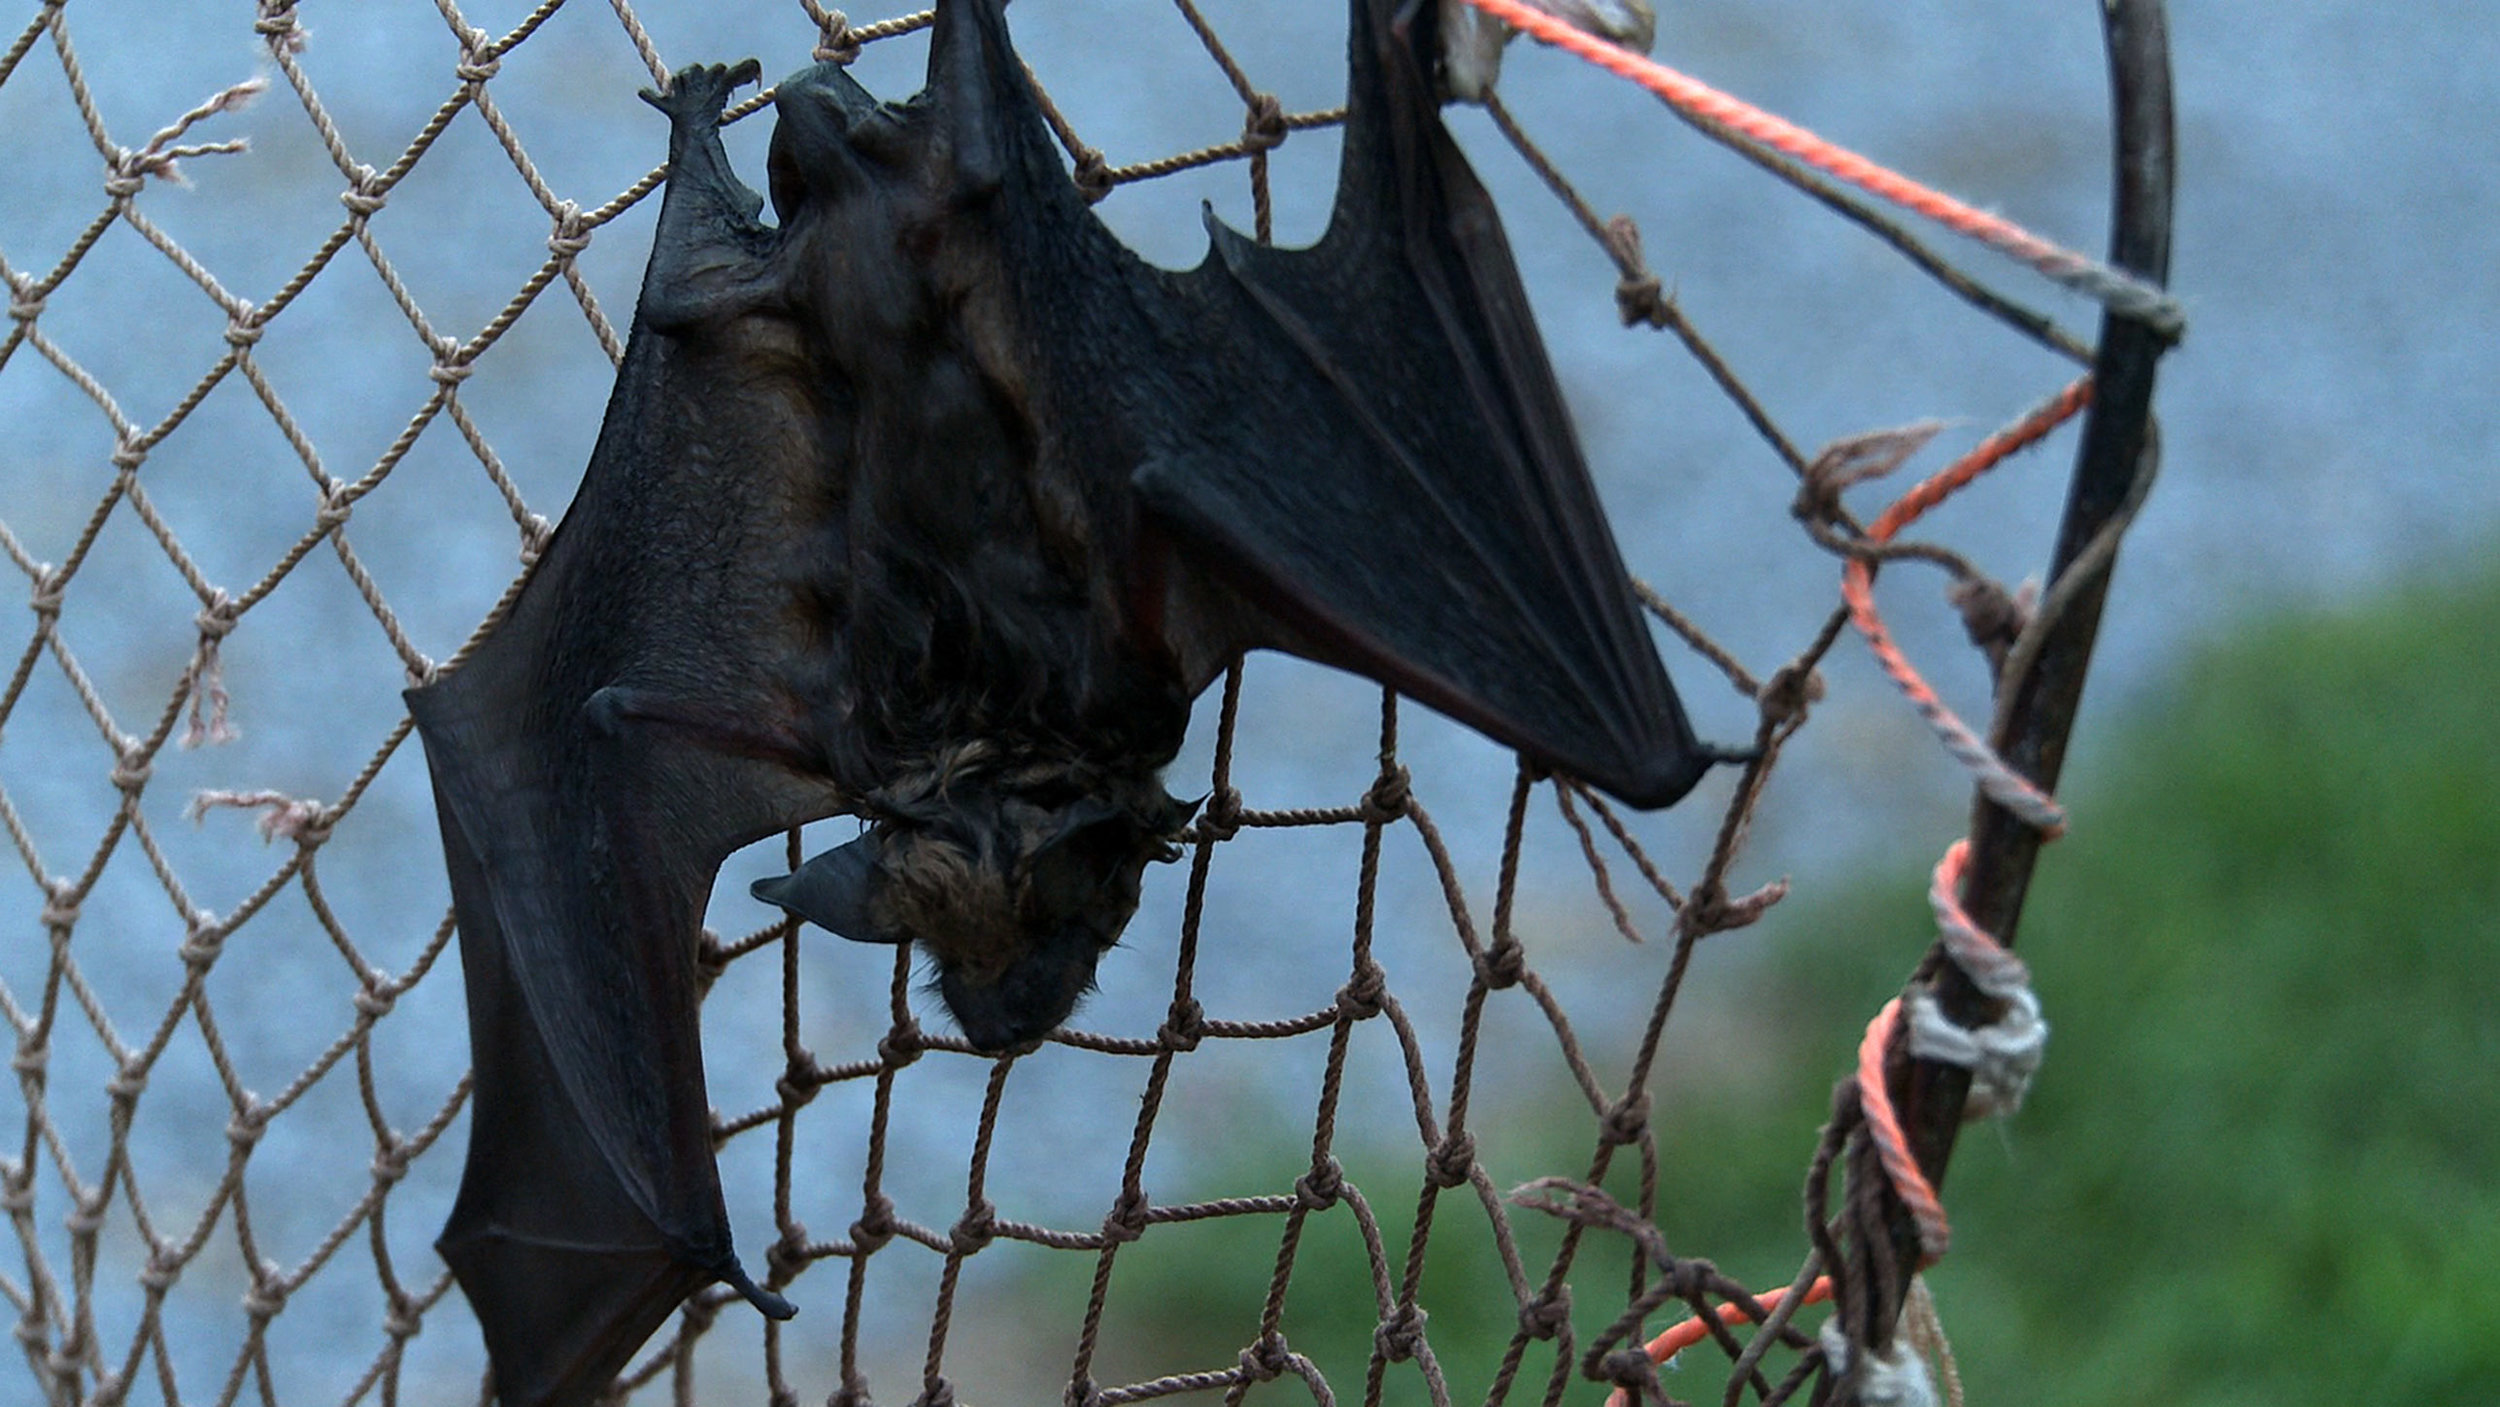 bat on net upside down.jpg